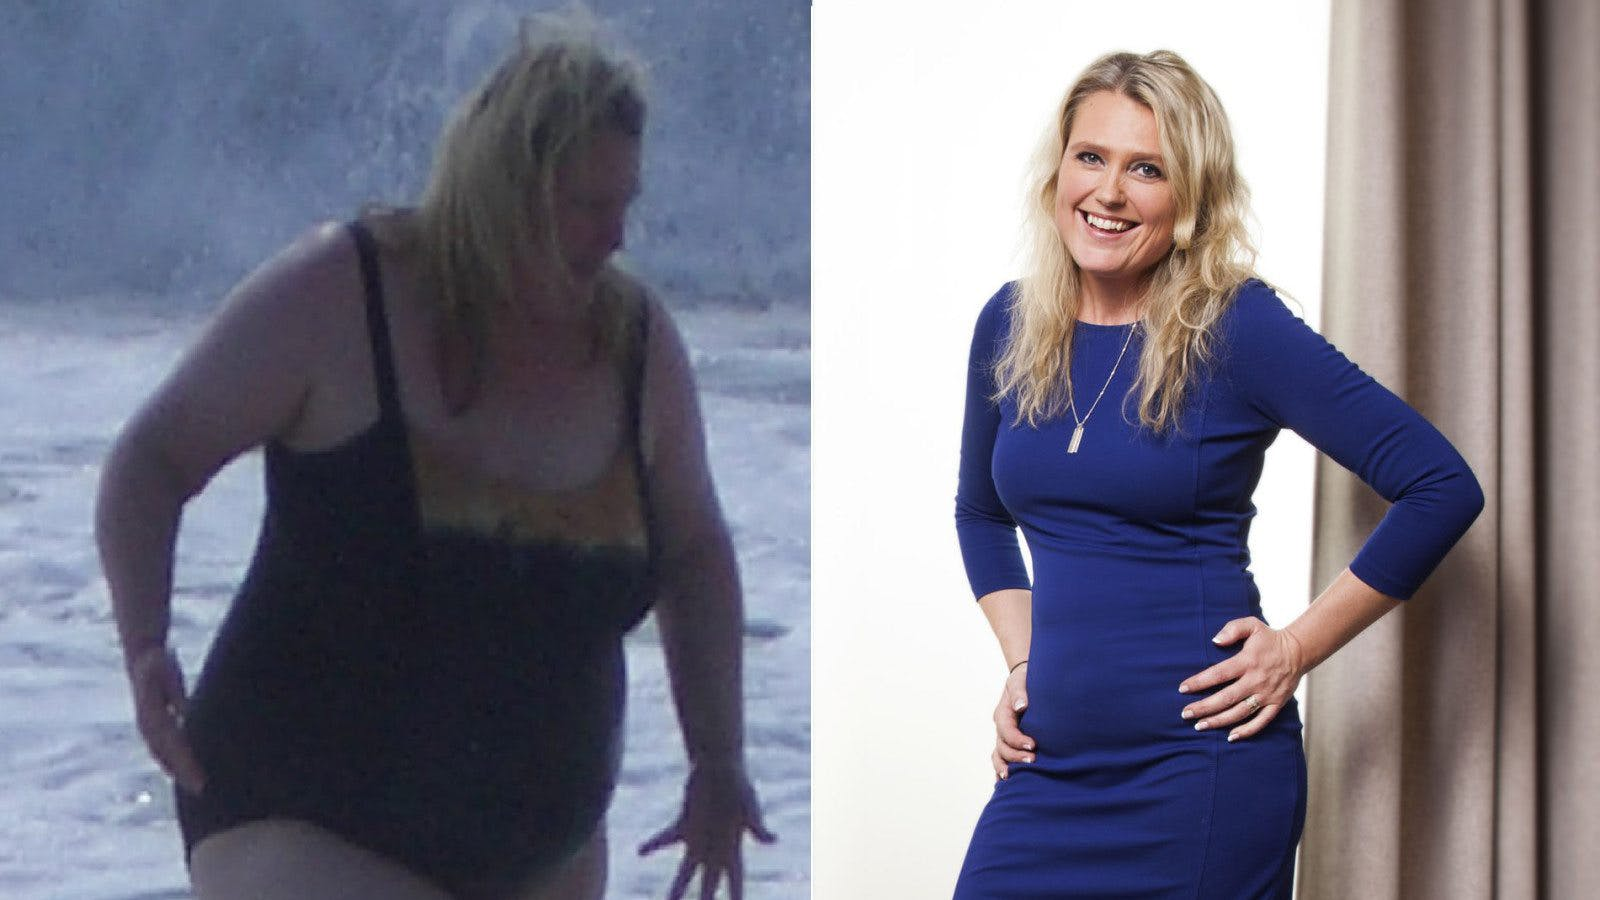 Low carb made Lindha half the woman she used to be